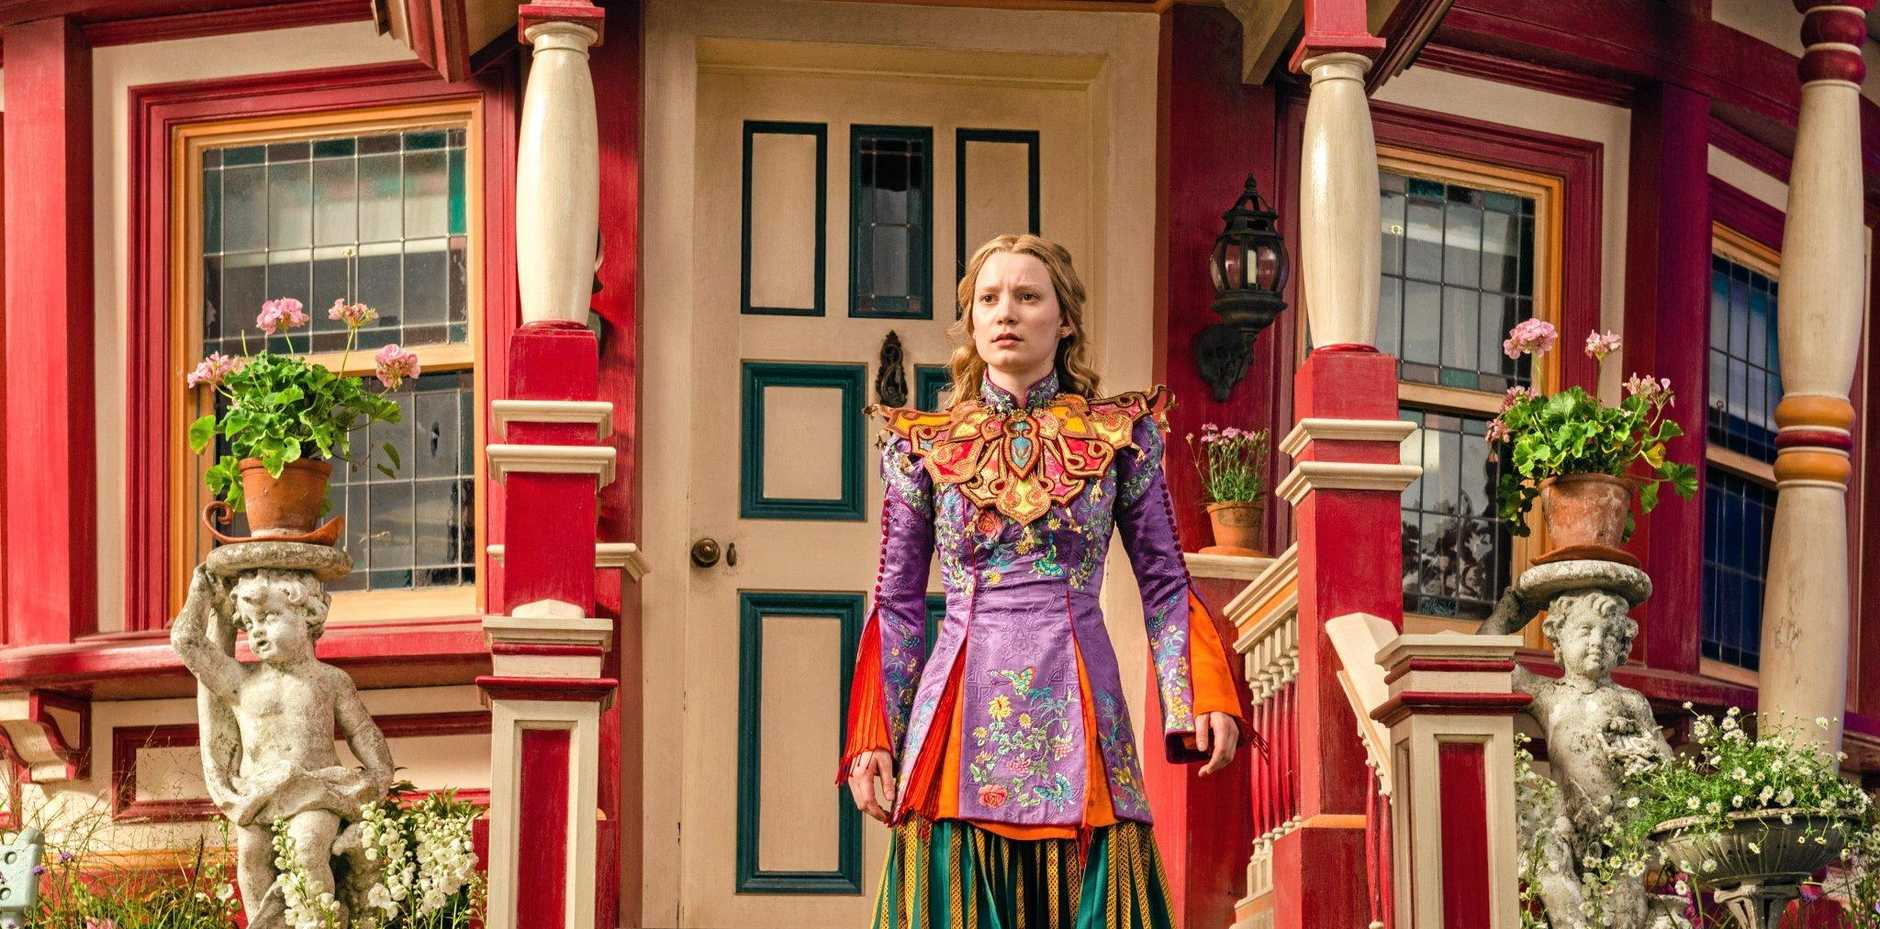 Mia Wasikowska talks to Weekend about her return as Alice to the whimsical world of Underland in Disney's Alice Through The Looking Glass, an all-new adventure featuring the unforgettable characters from Lewis Carroll's beloved stories.